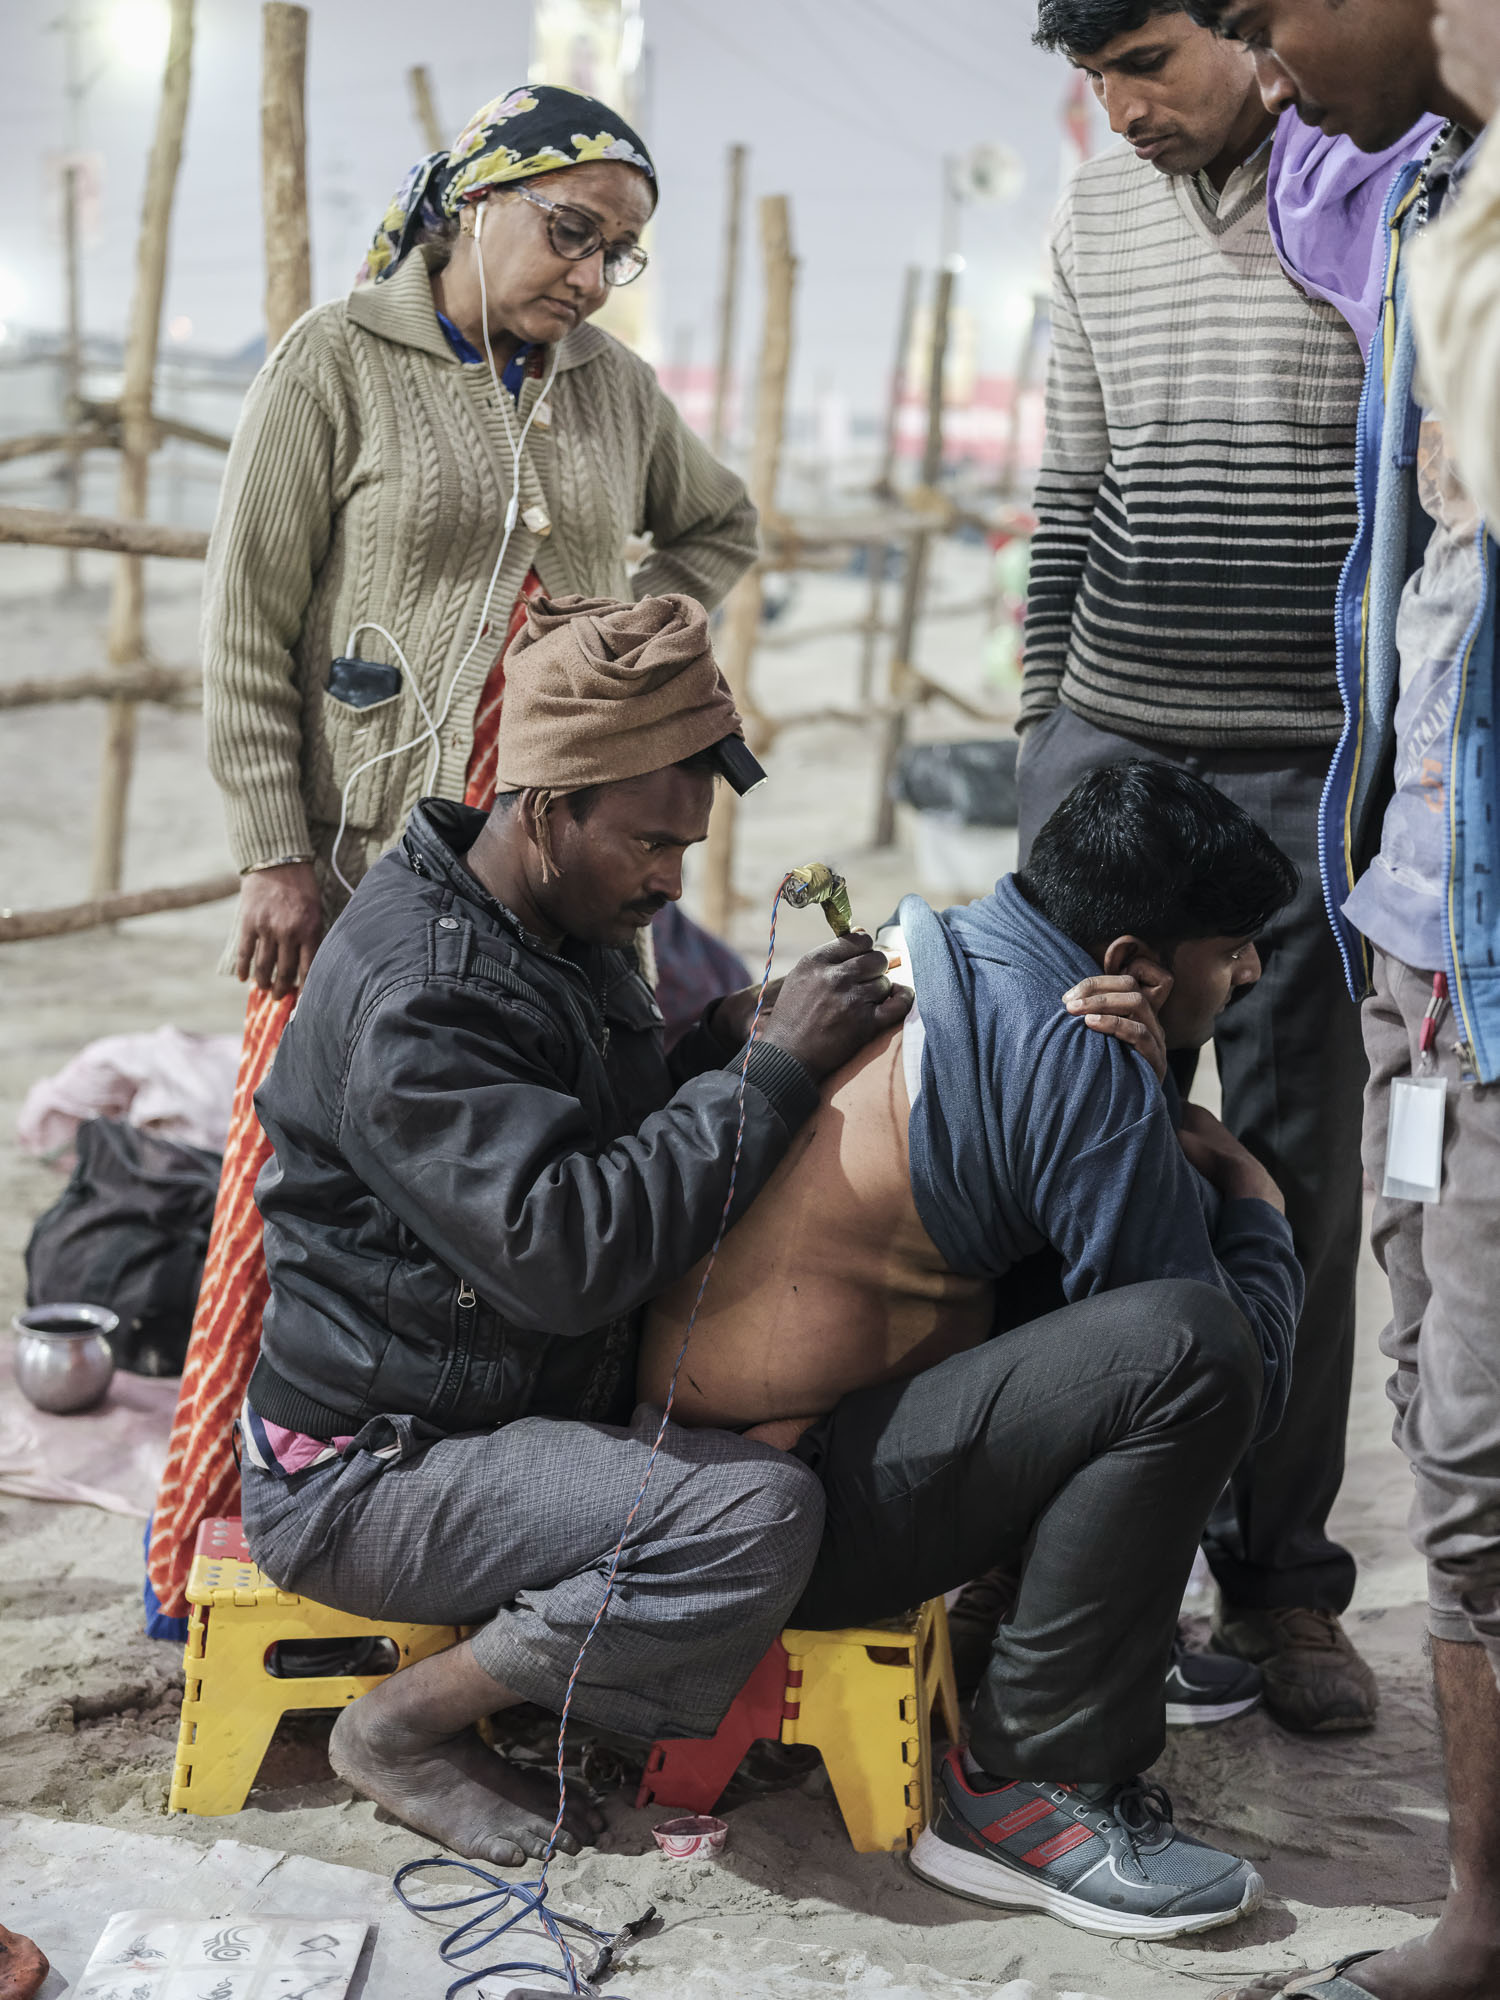 tattoo street village camp crowd 4 February pilgrims Kumbh mela 2019 India Allahabad Prayagraj Ardh hindu religious Festival event rivers photographer jose jeuland photography